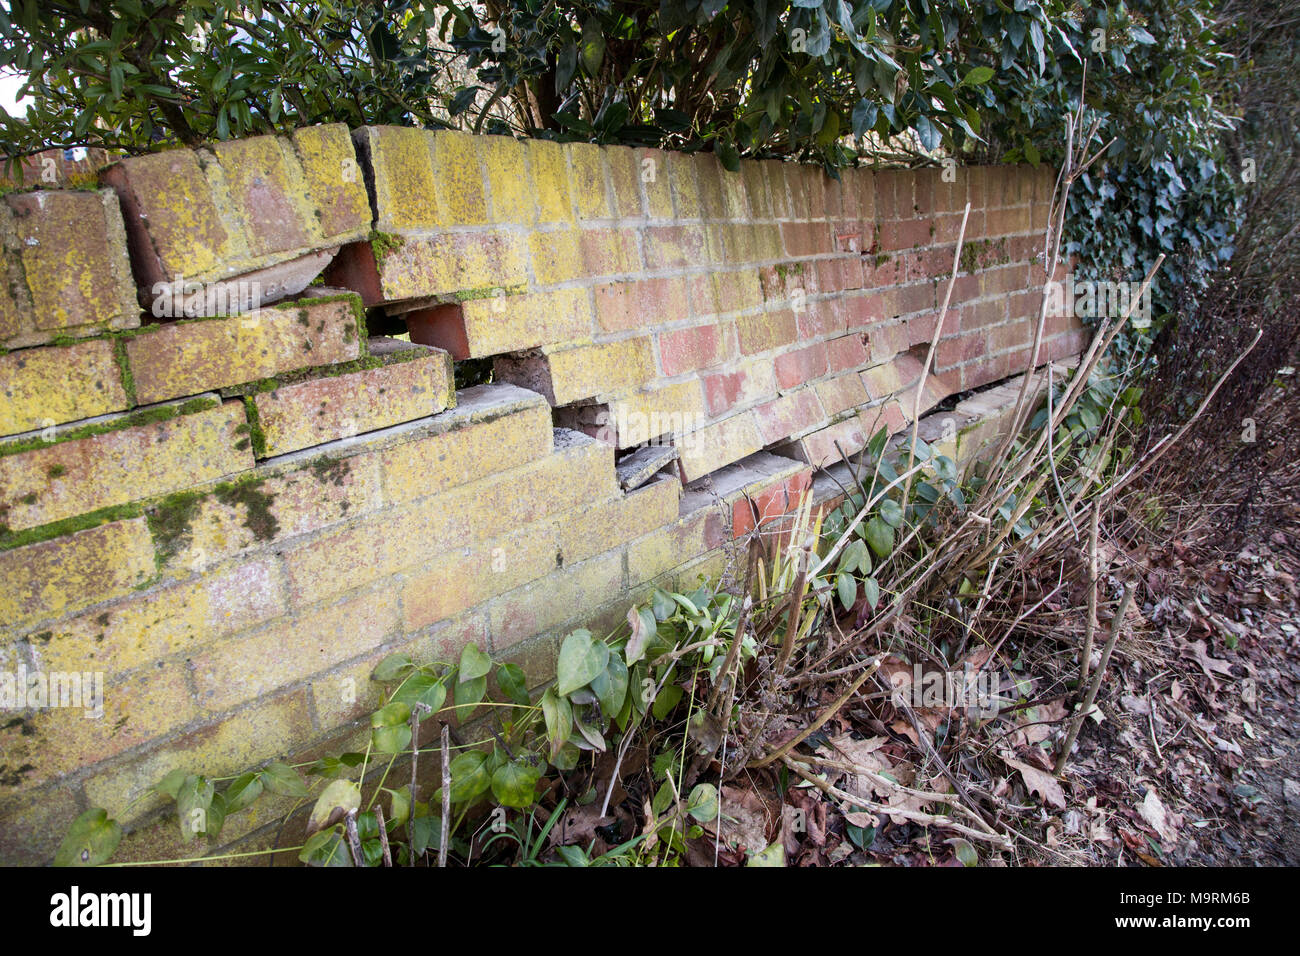 Impact Damage To Red Brick Garden Wall Caused By Vehicle Reversing